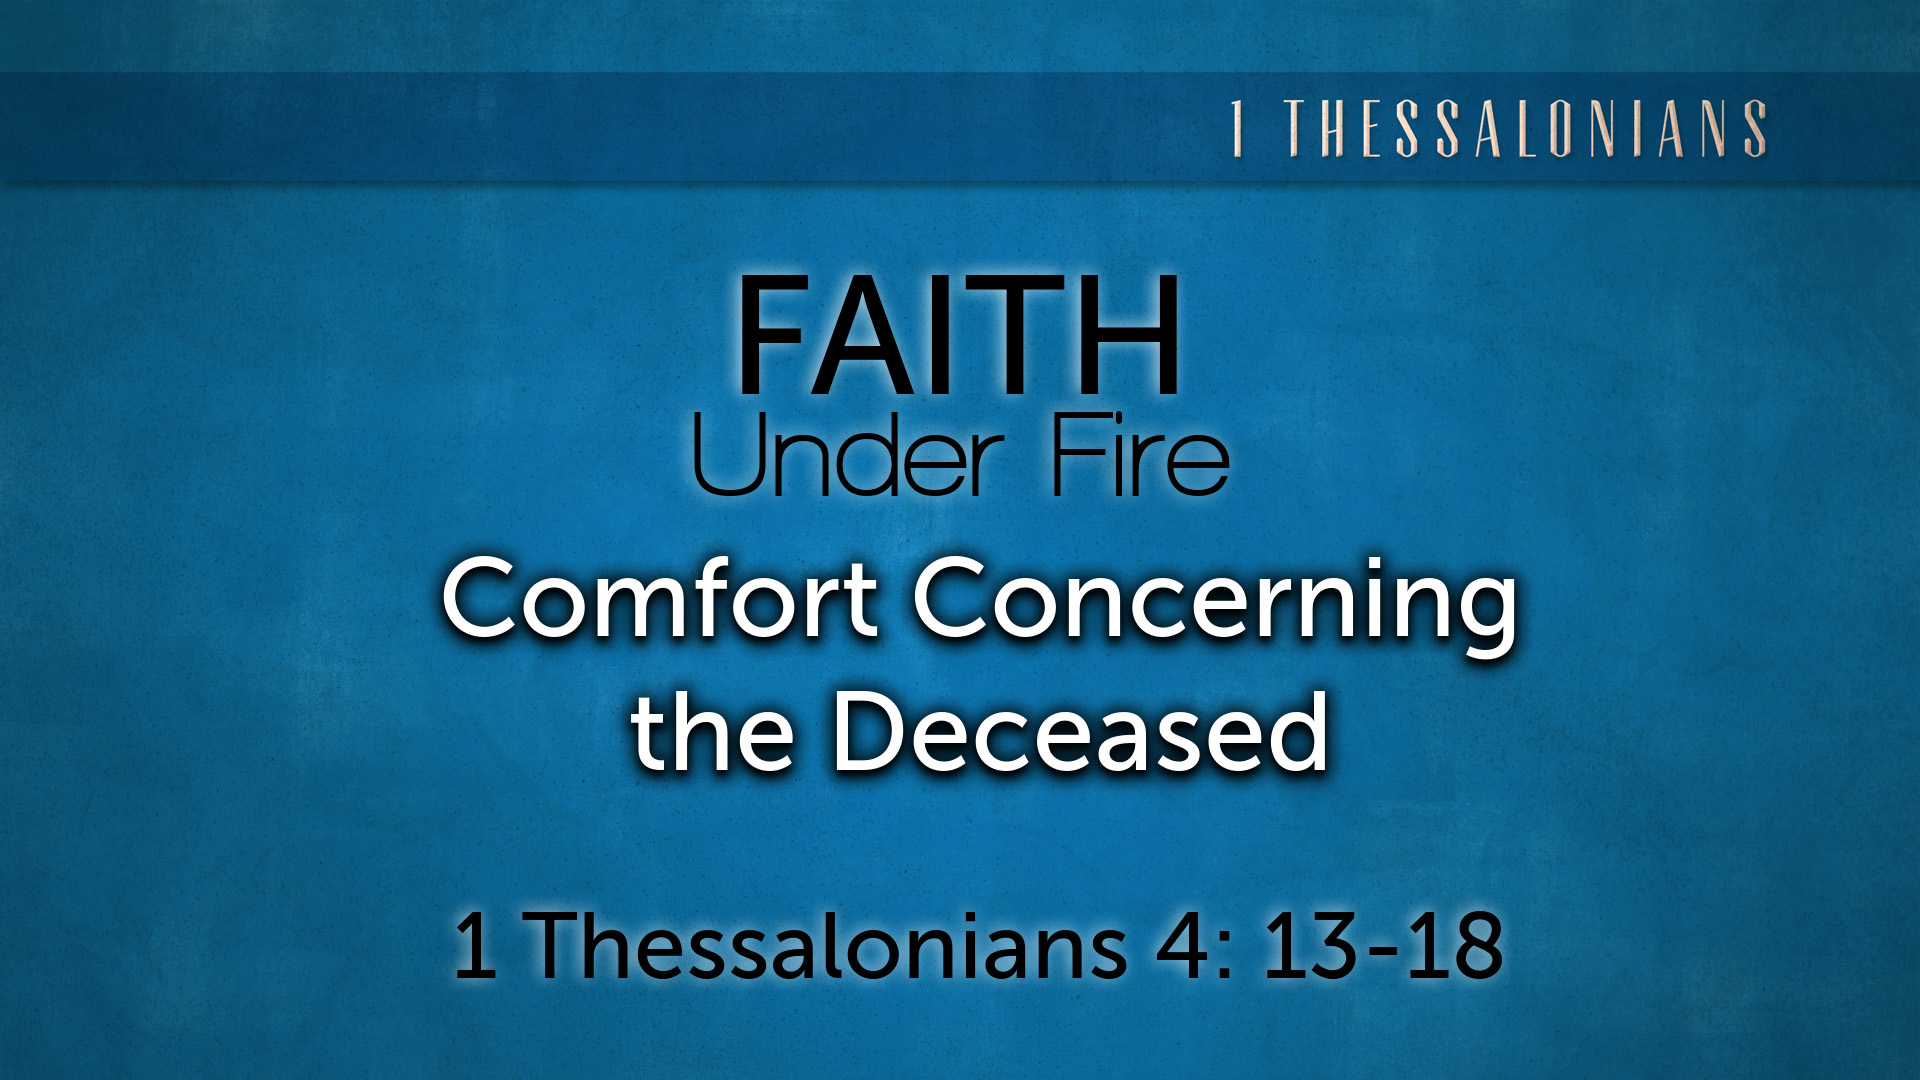 Image for the sermon Comfort Concerning the Deceased